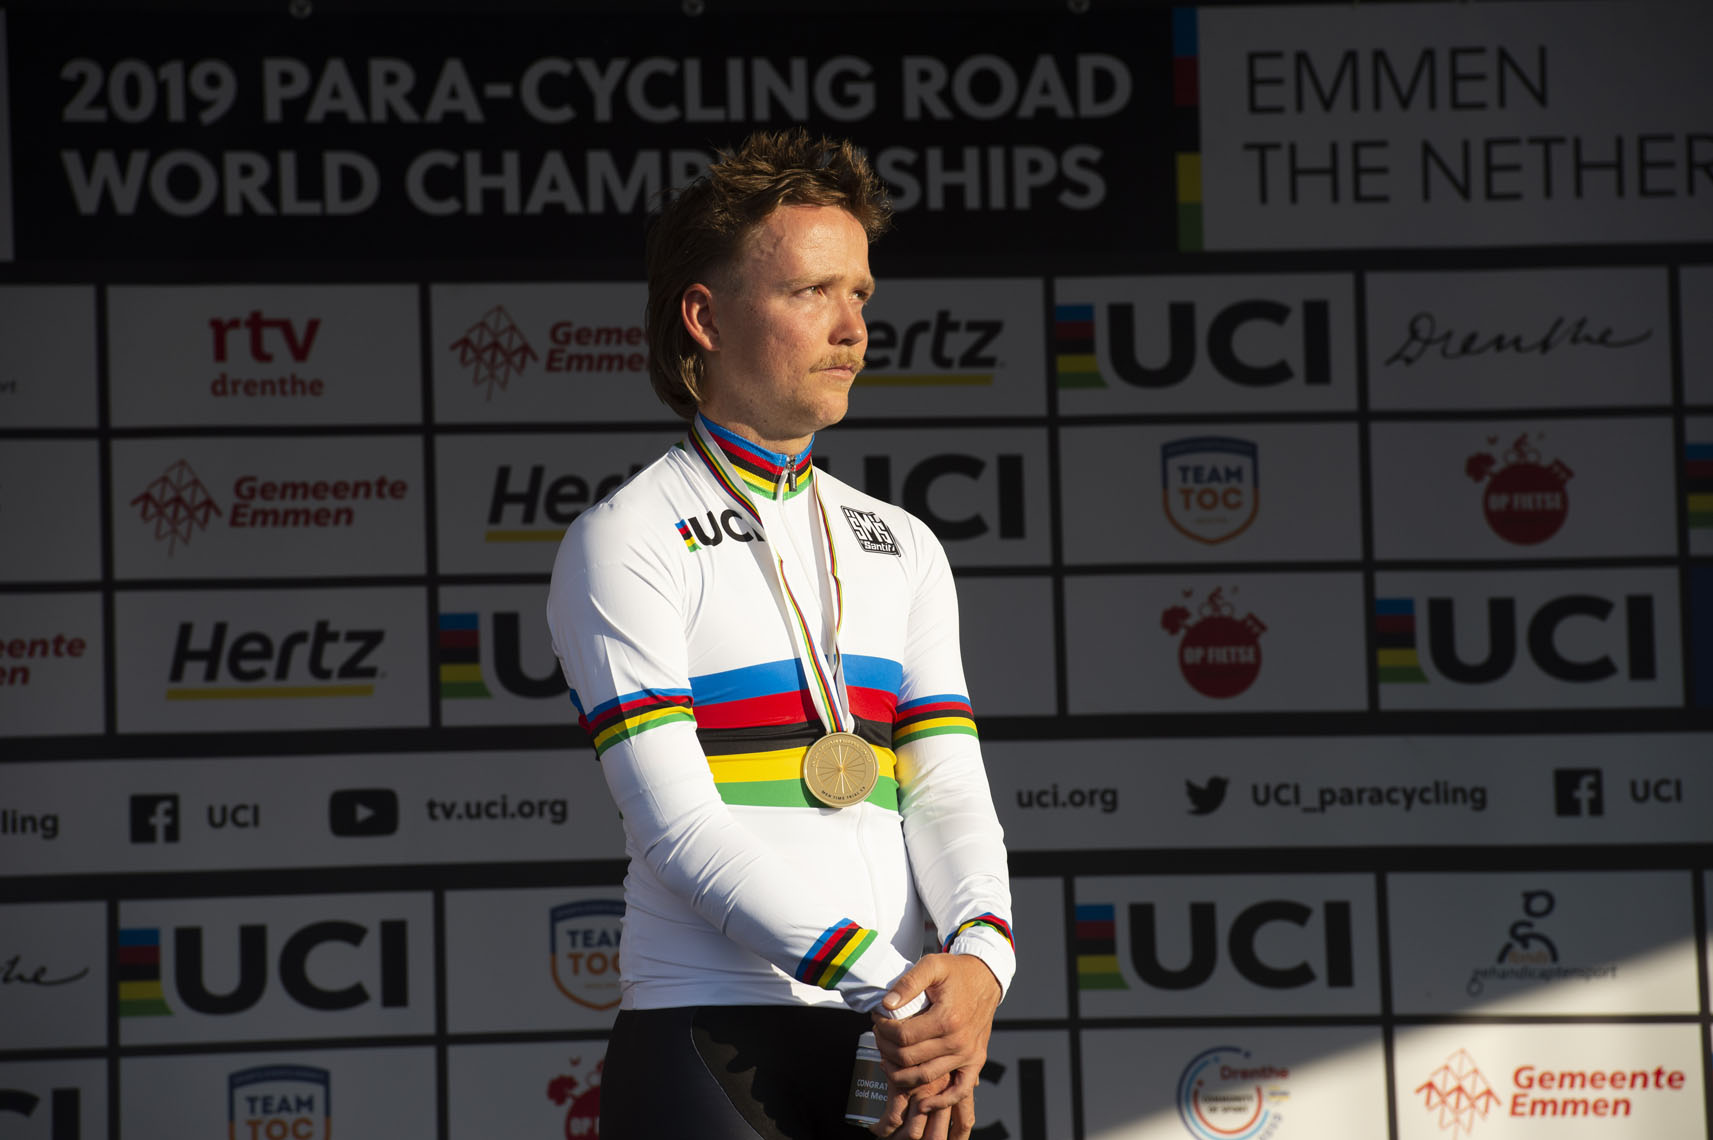 Adam Donohoe, 2019 Paracycling Road World Championships